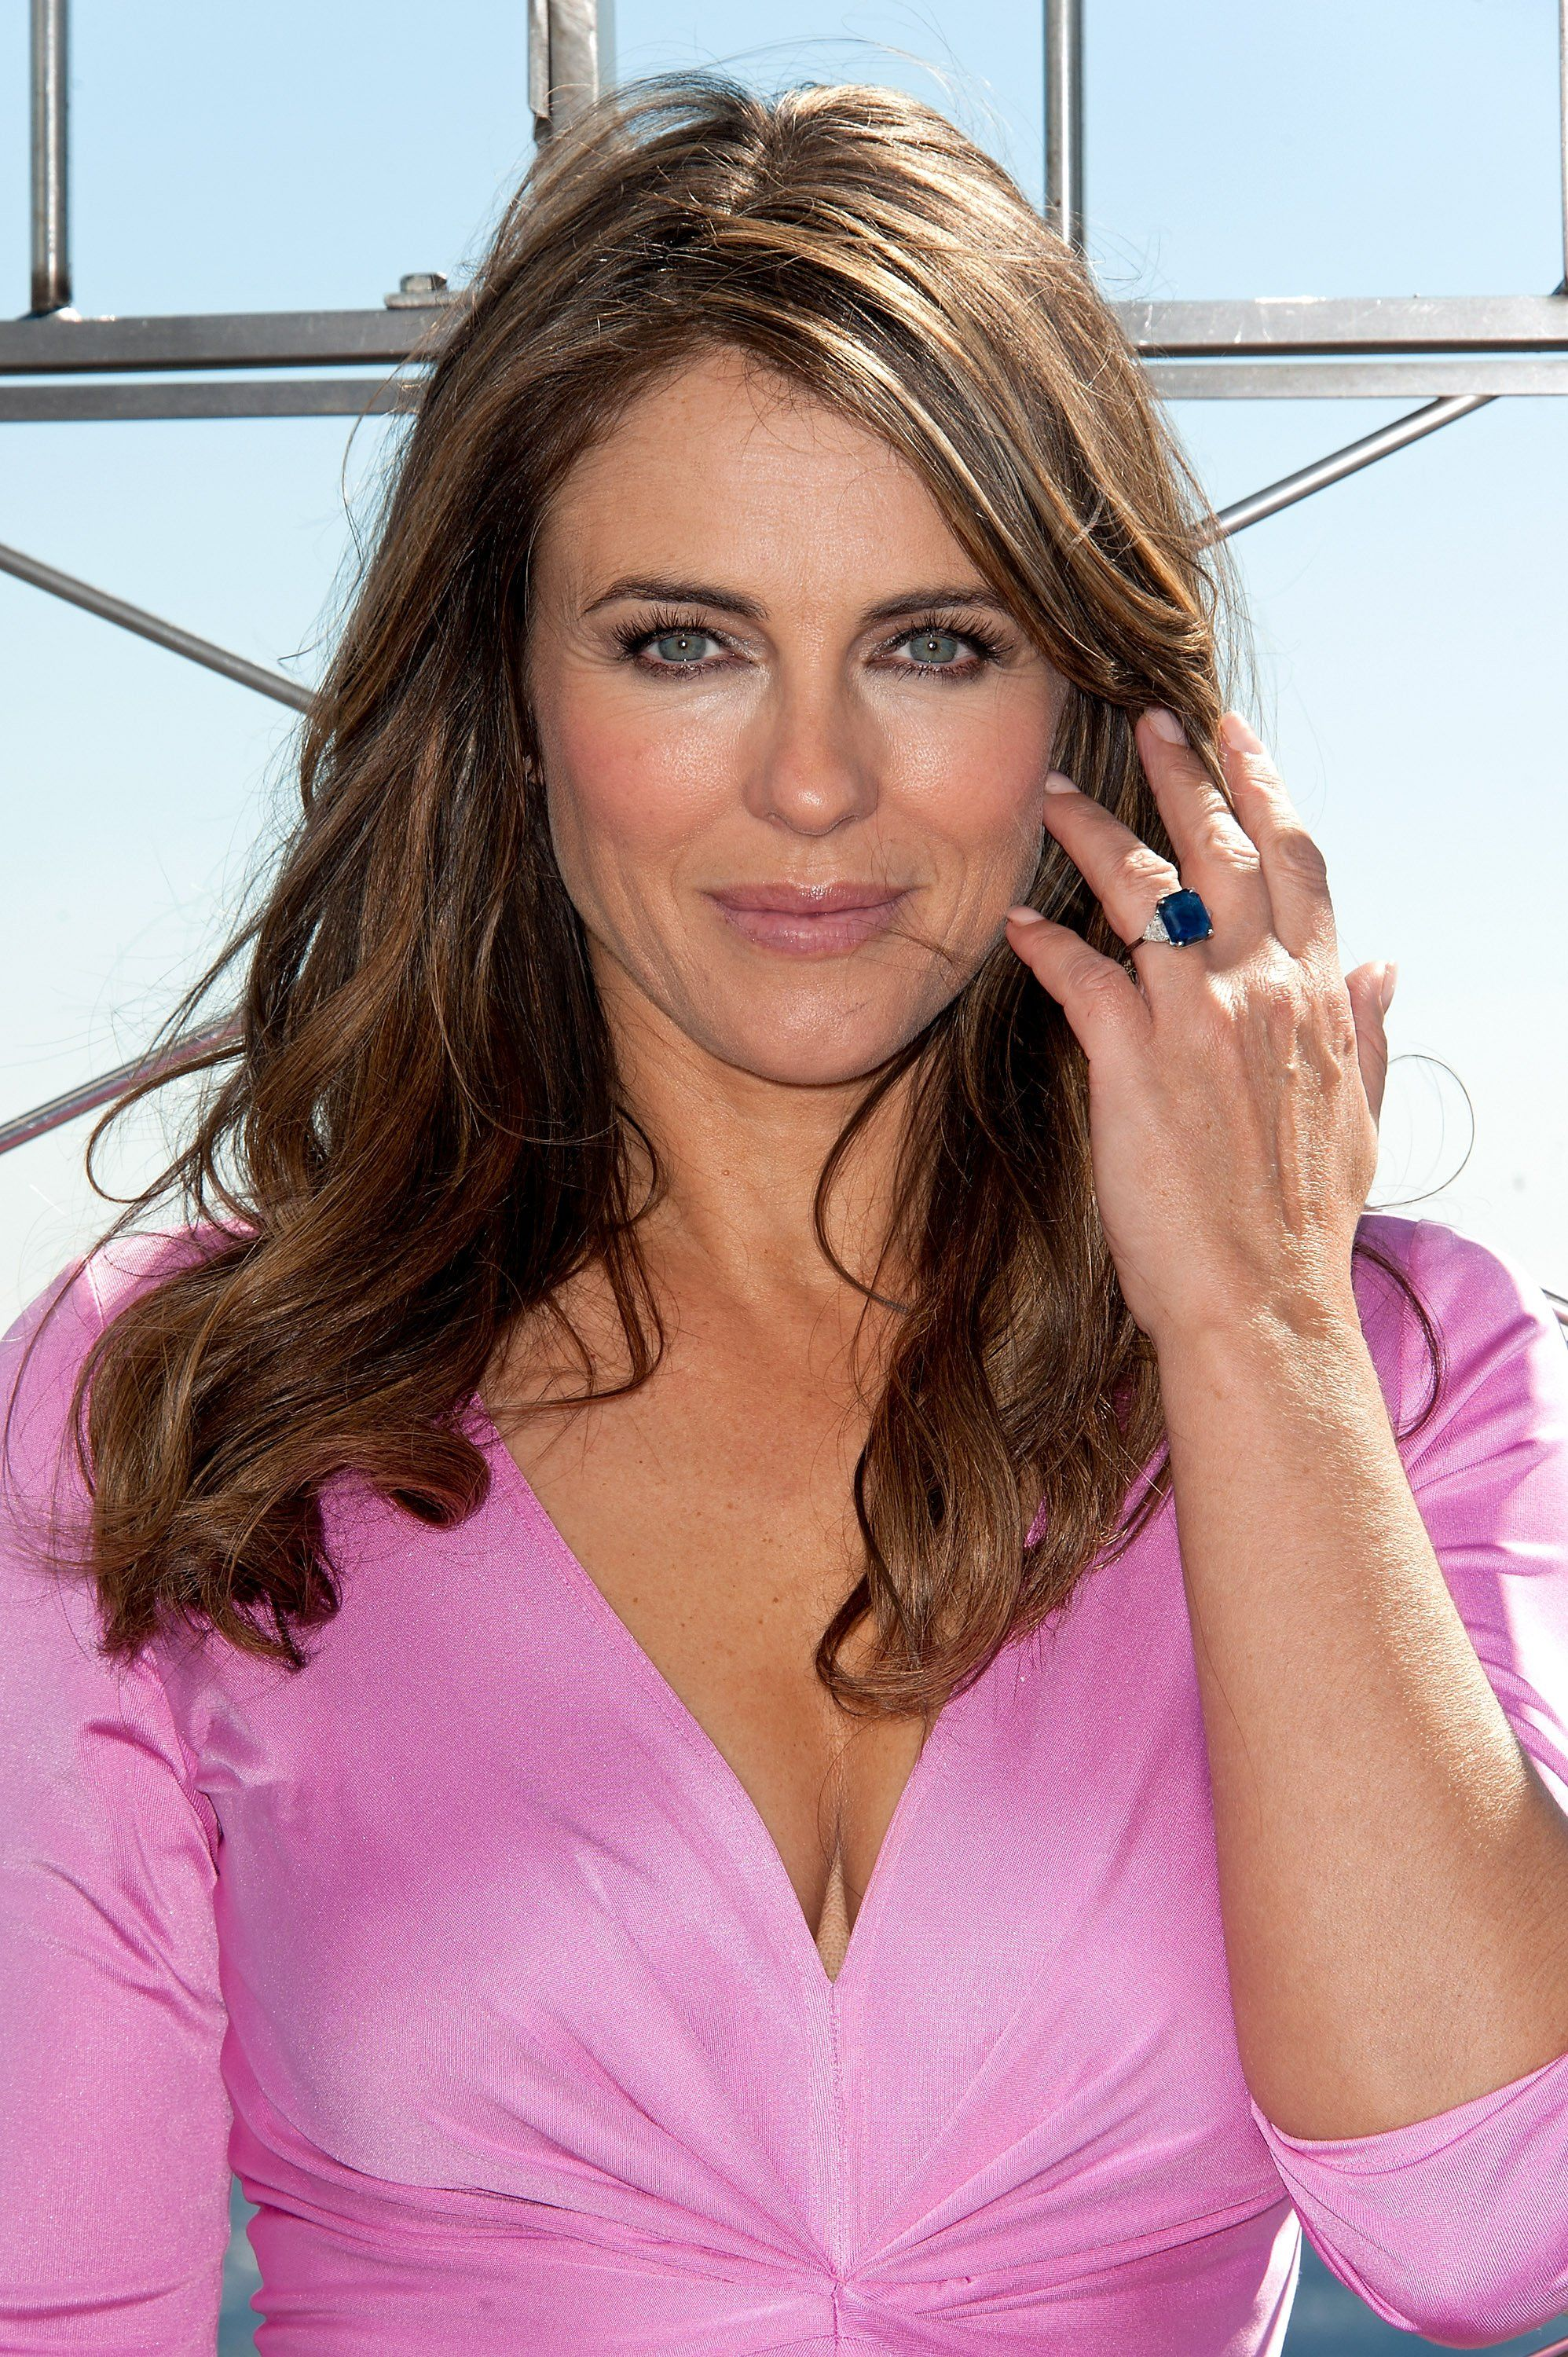 Celebrity Elizabeth Hurley nudes (57 foto and video), Tits, Cleavage, Selfie, butt 2015